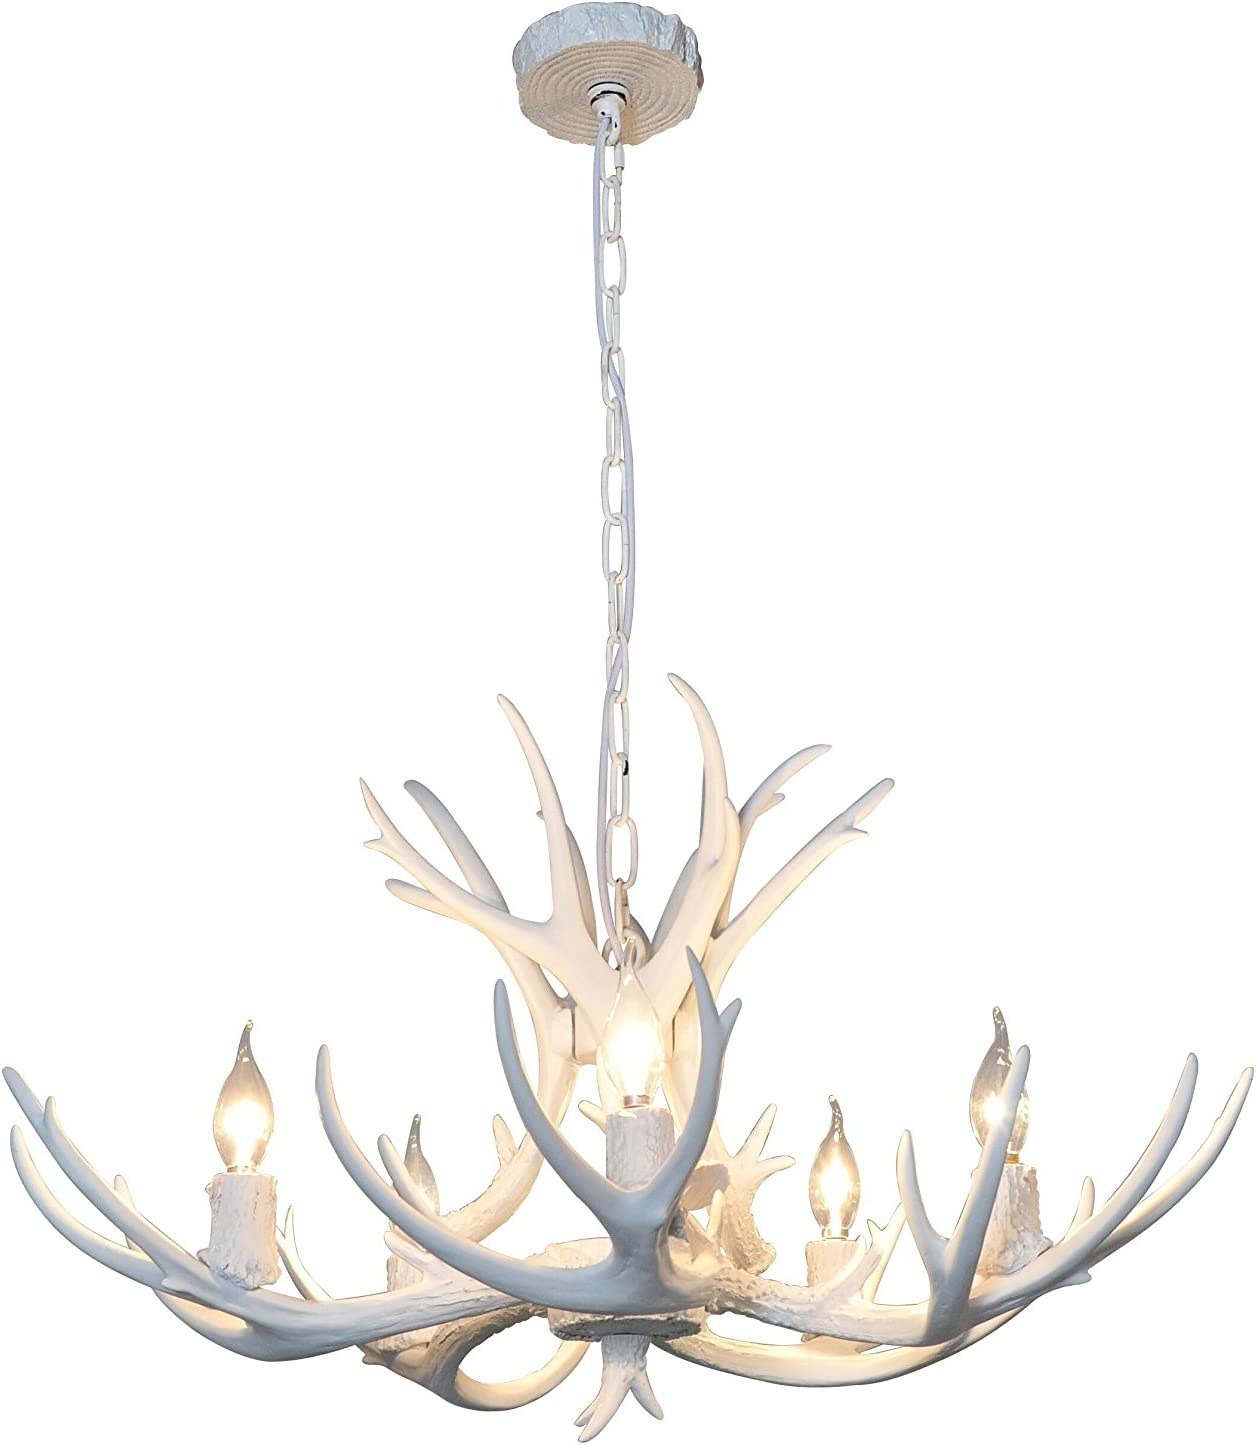 EFFORTINC Resin Antler Chandeliers 5 Light 29.5 Diameter X 17 Tall with 4 Feet Matching Chain Bulbs Not Included